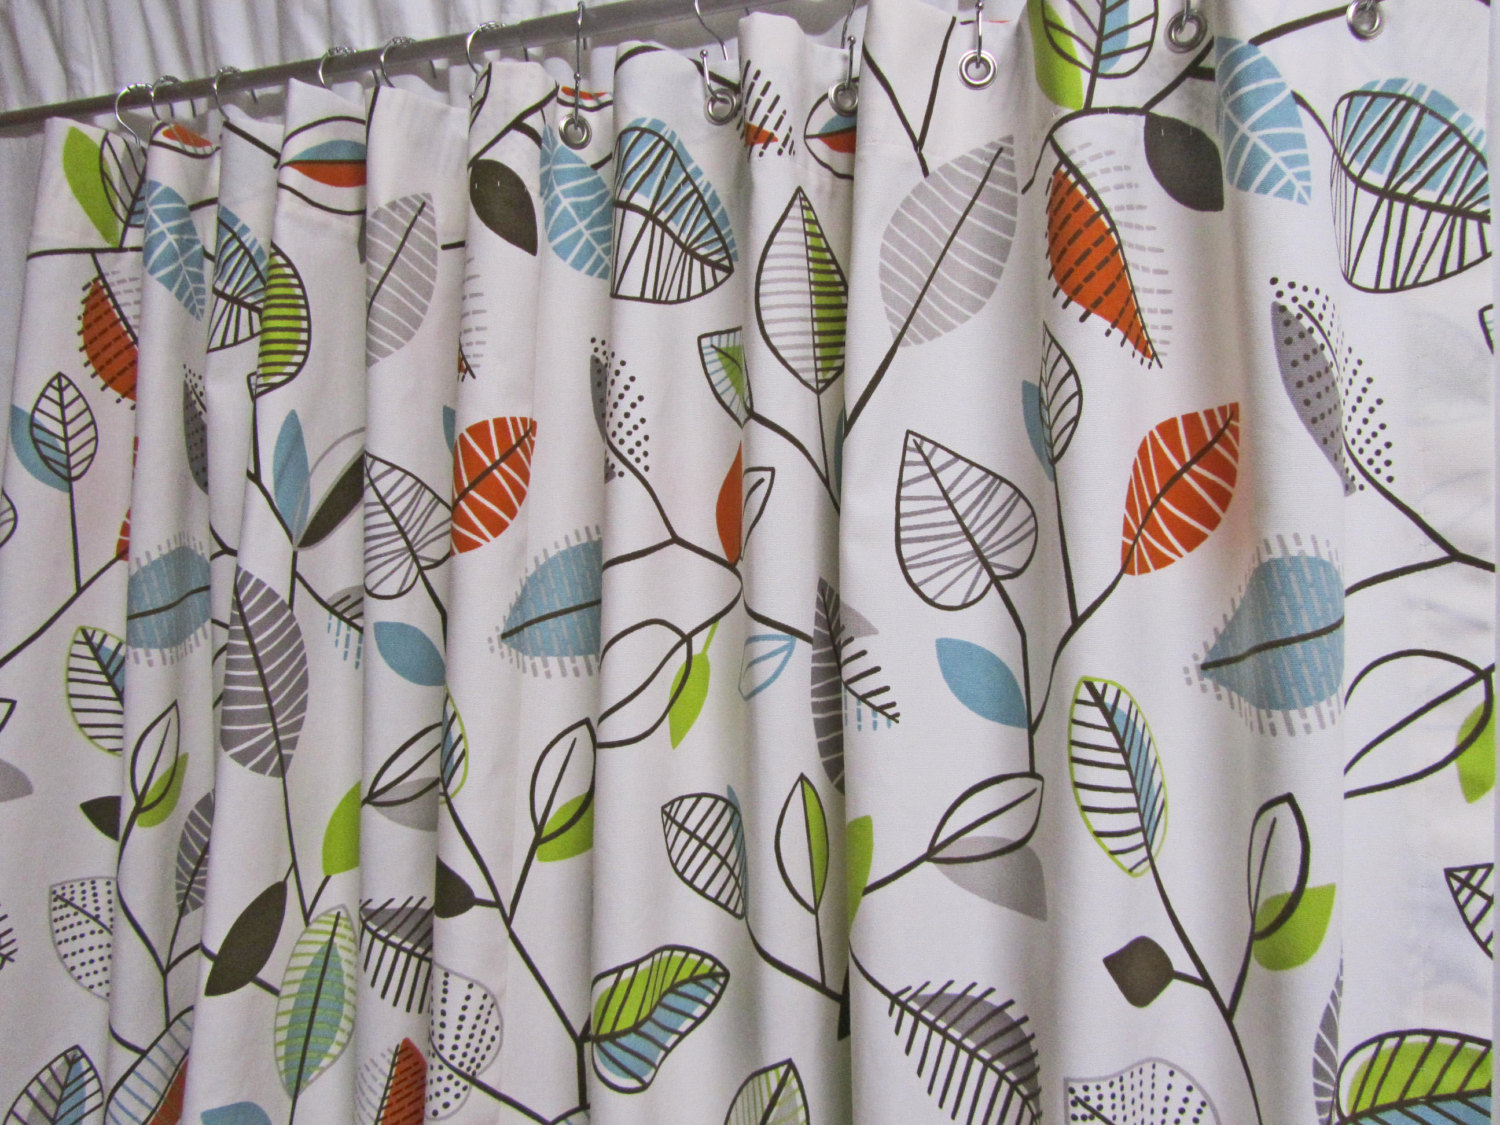 Ikea Strandkrypa Fabric Shower Curtain Botanical Garden Print Floral Plants Flowers White